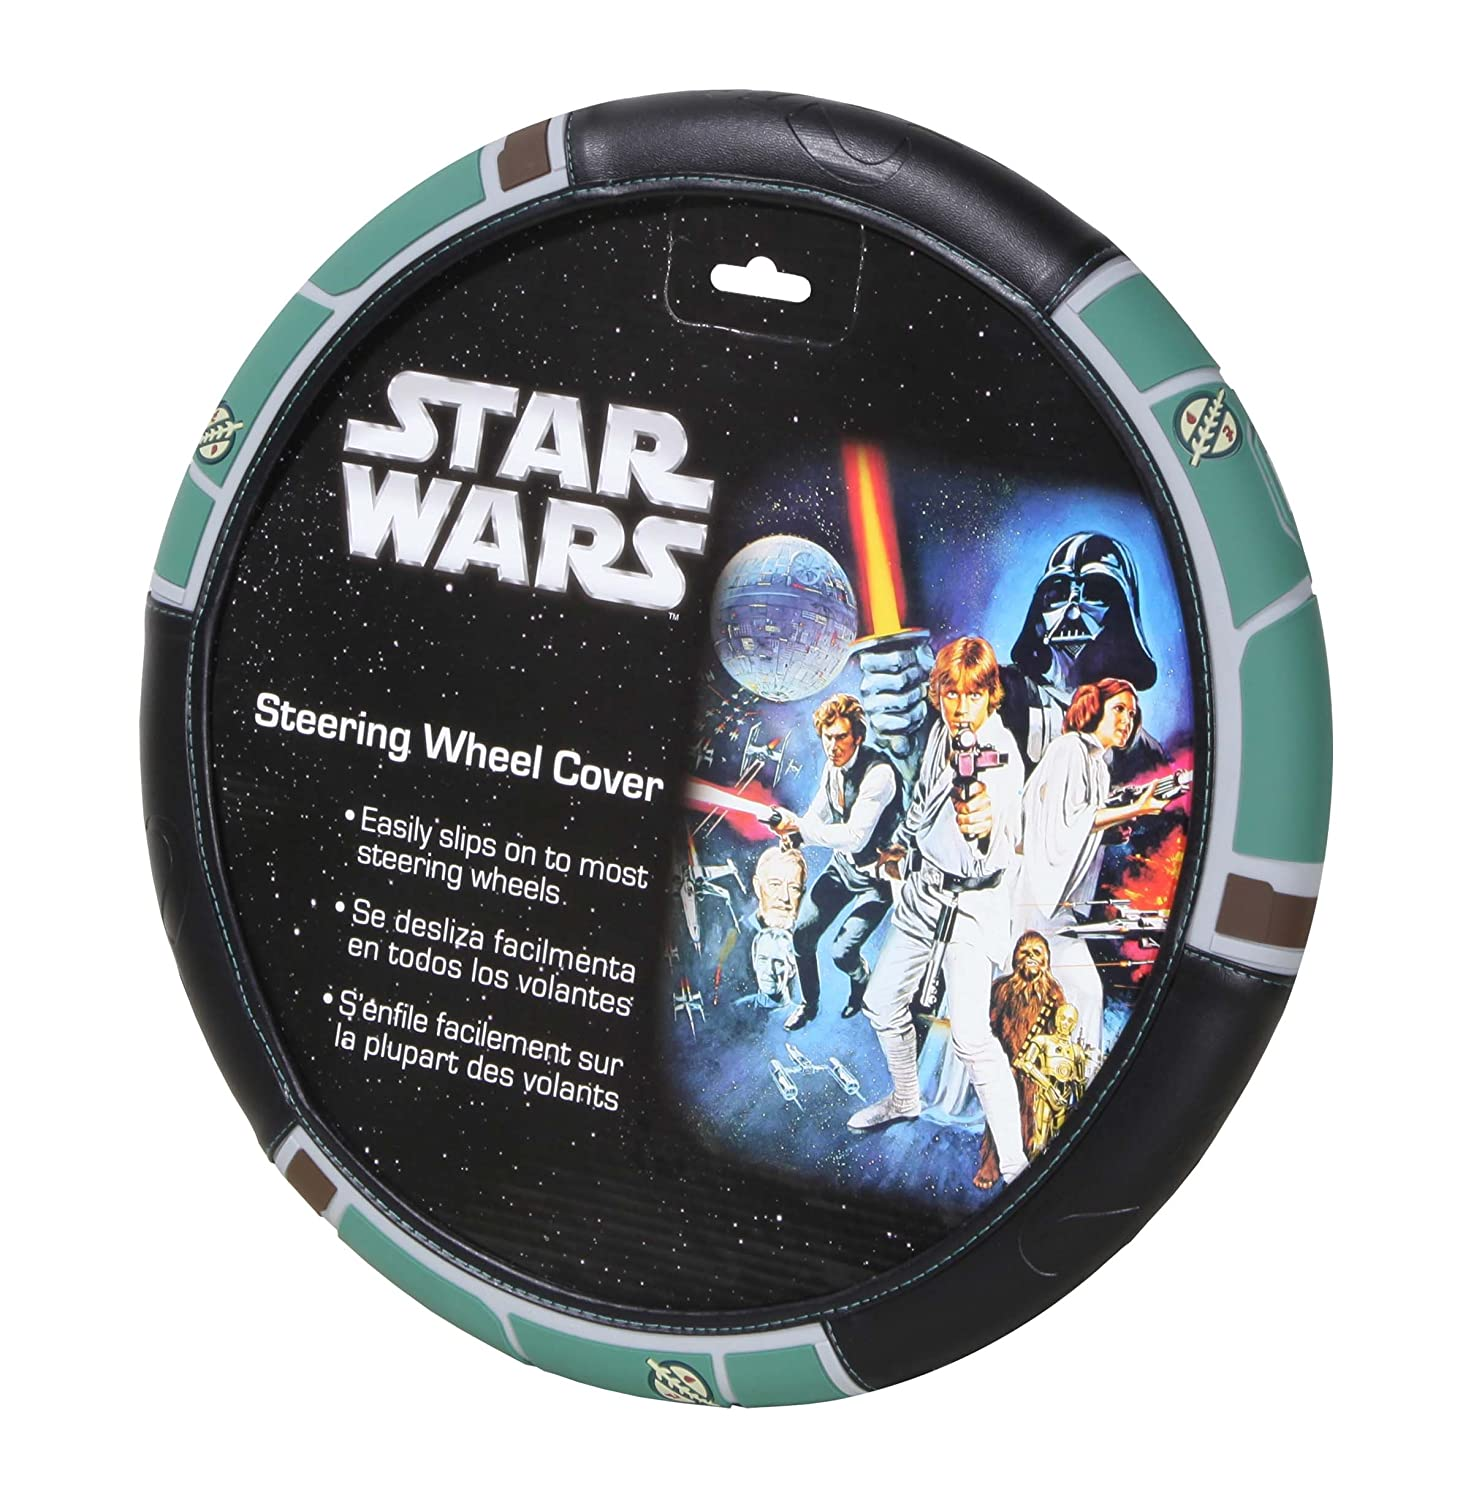 Plasticolor 006762R01 Black Steering Wheel Cover (Star Wars Boba Fett)